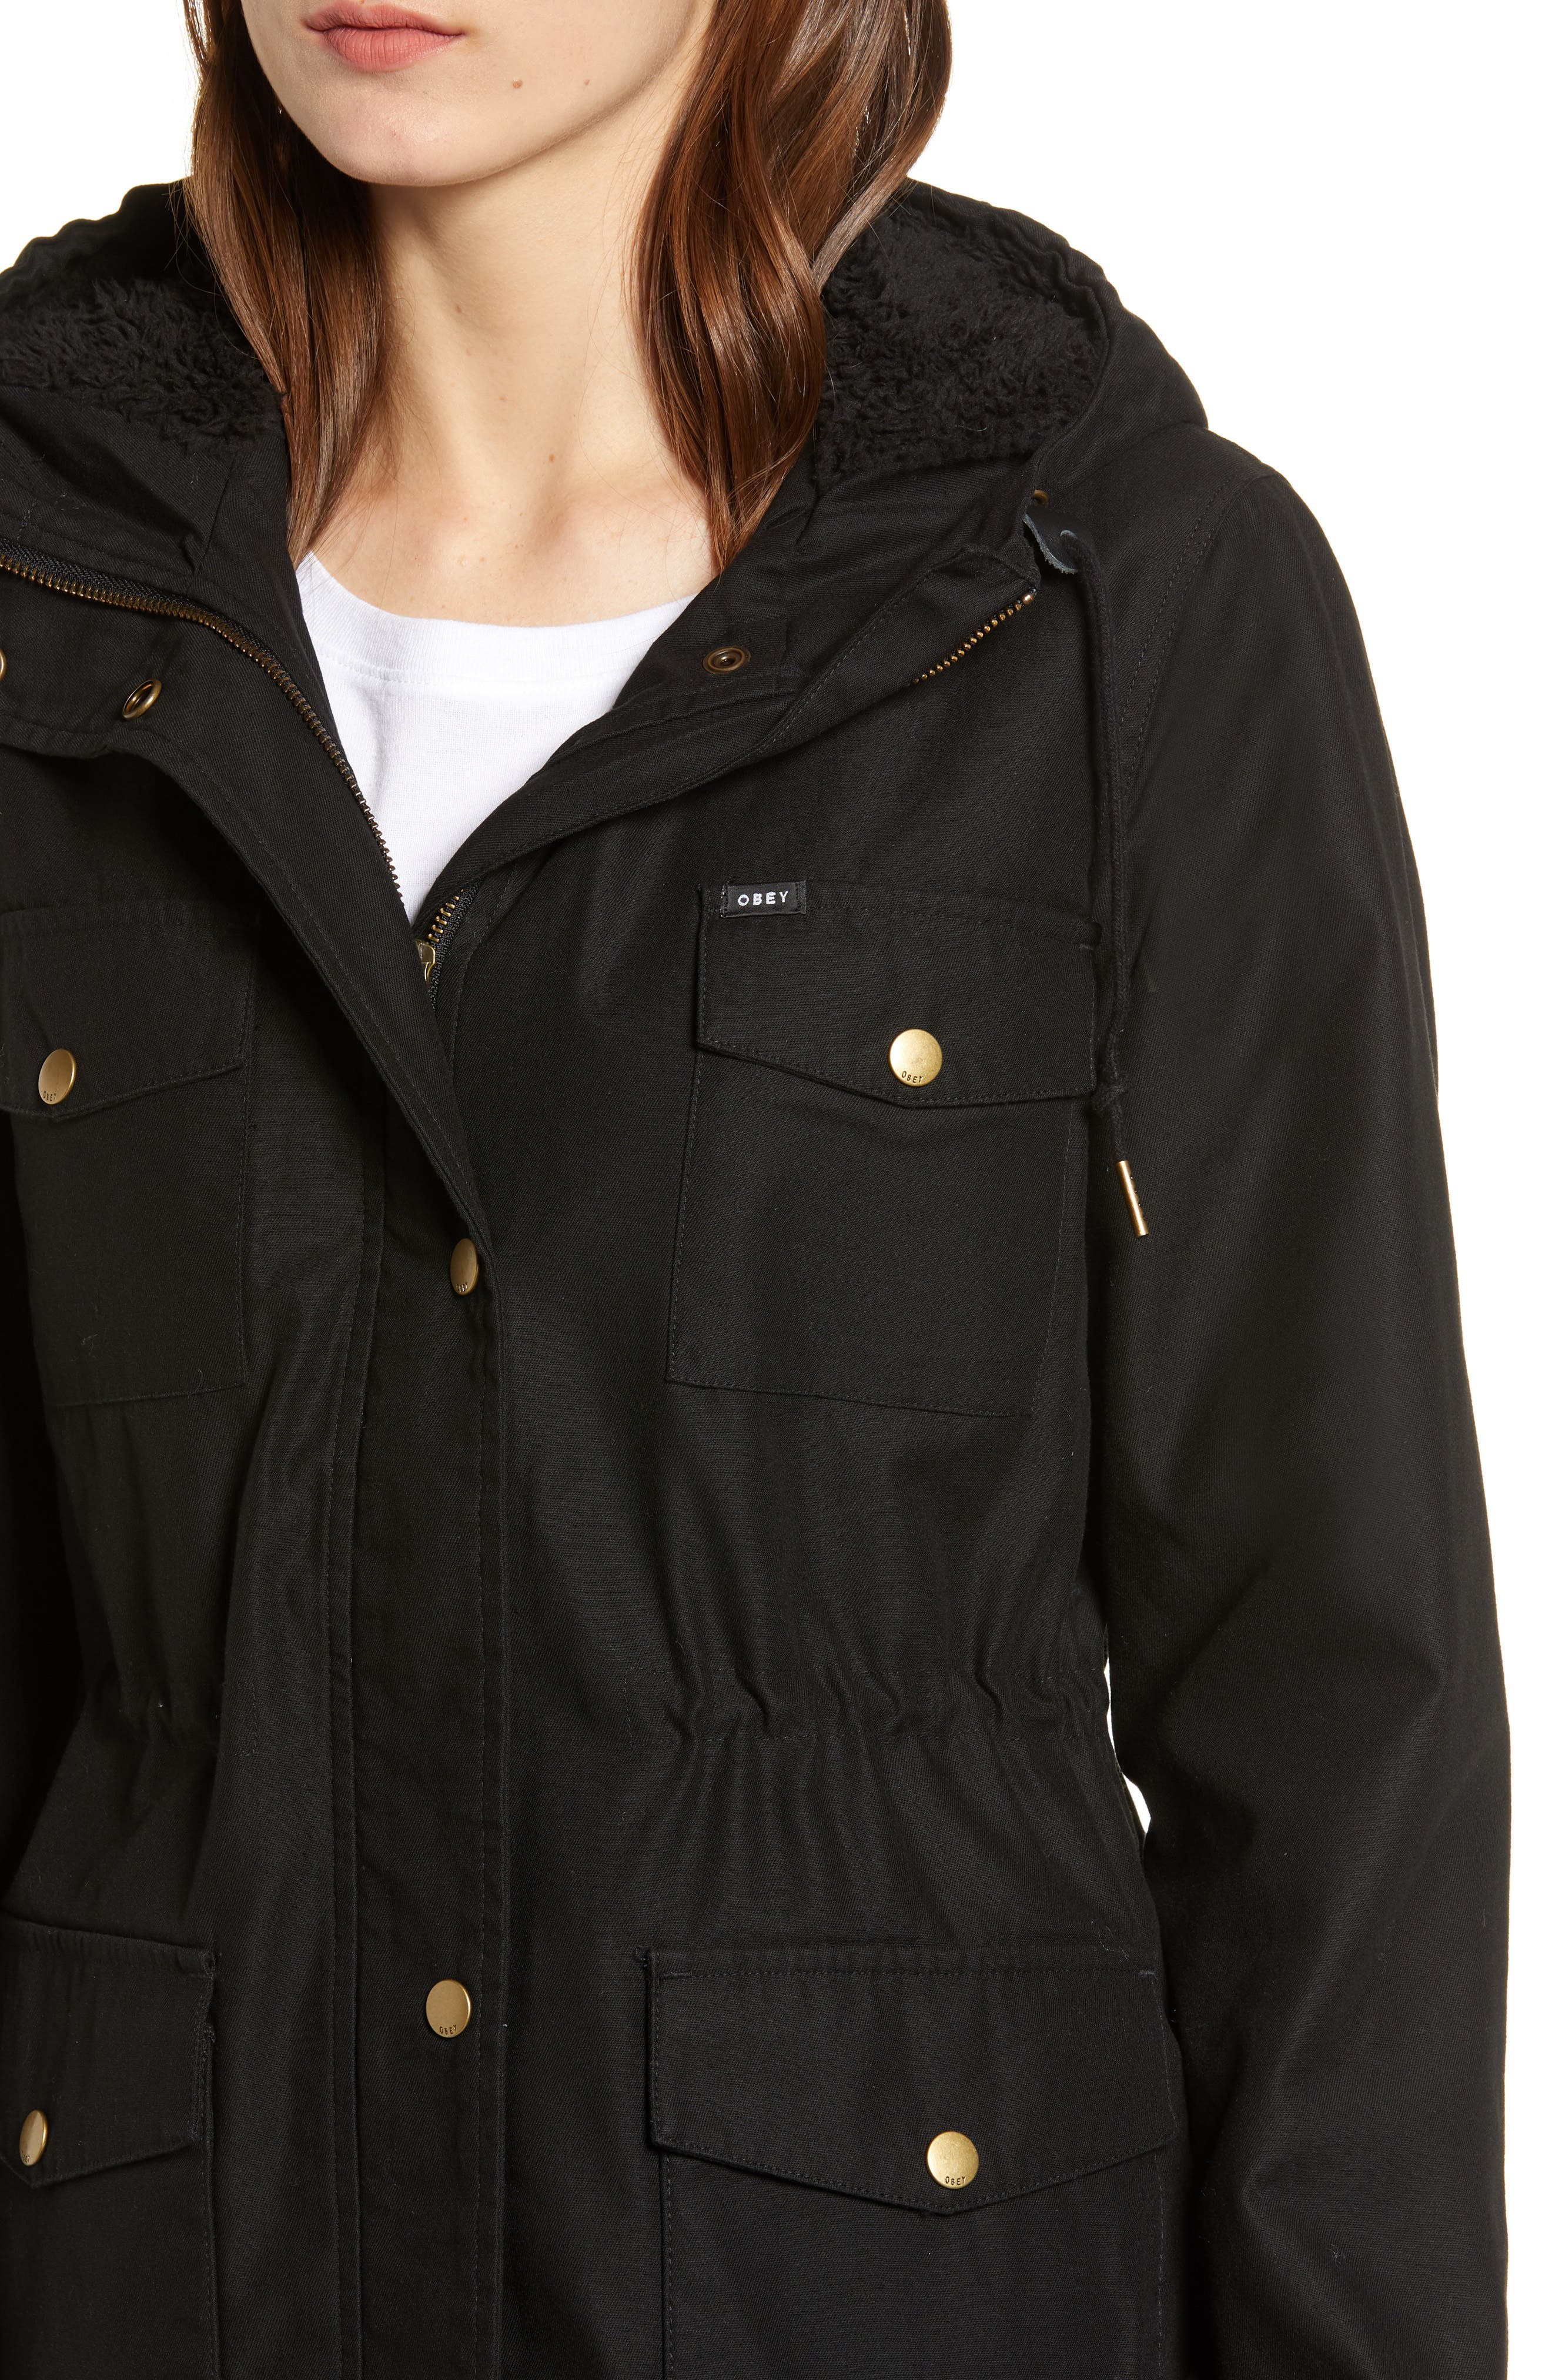 Pistol Water-Resistant Jacket,                             Alternate thumbnail 4, color,                             001